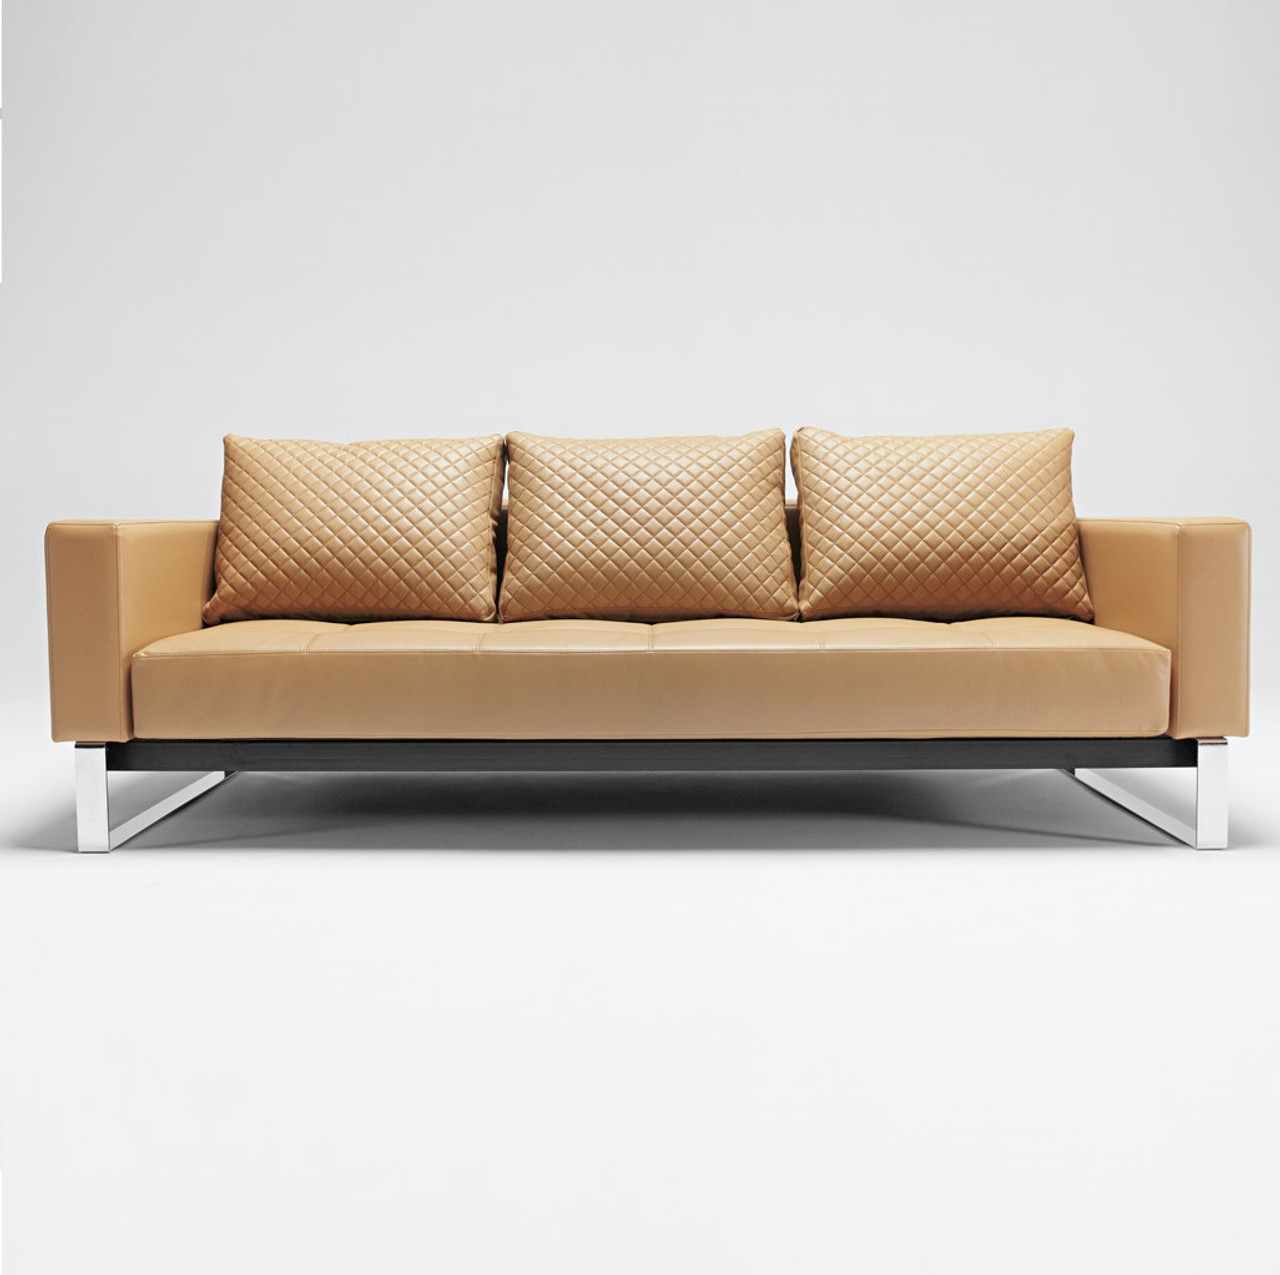 Cassius Q Deluxe Tan Leather Sleeper Sofa-Chrome Legs